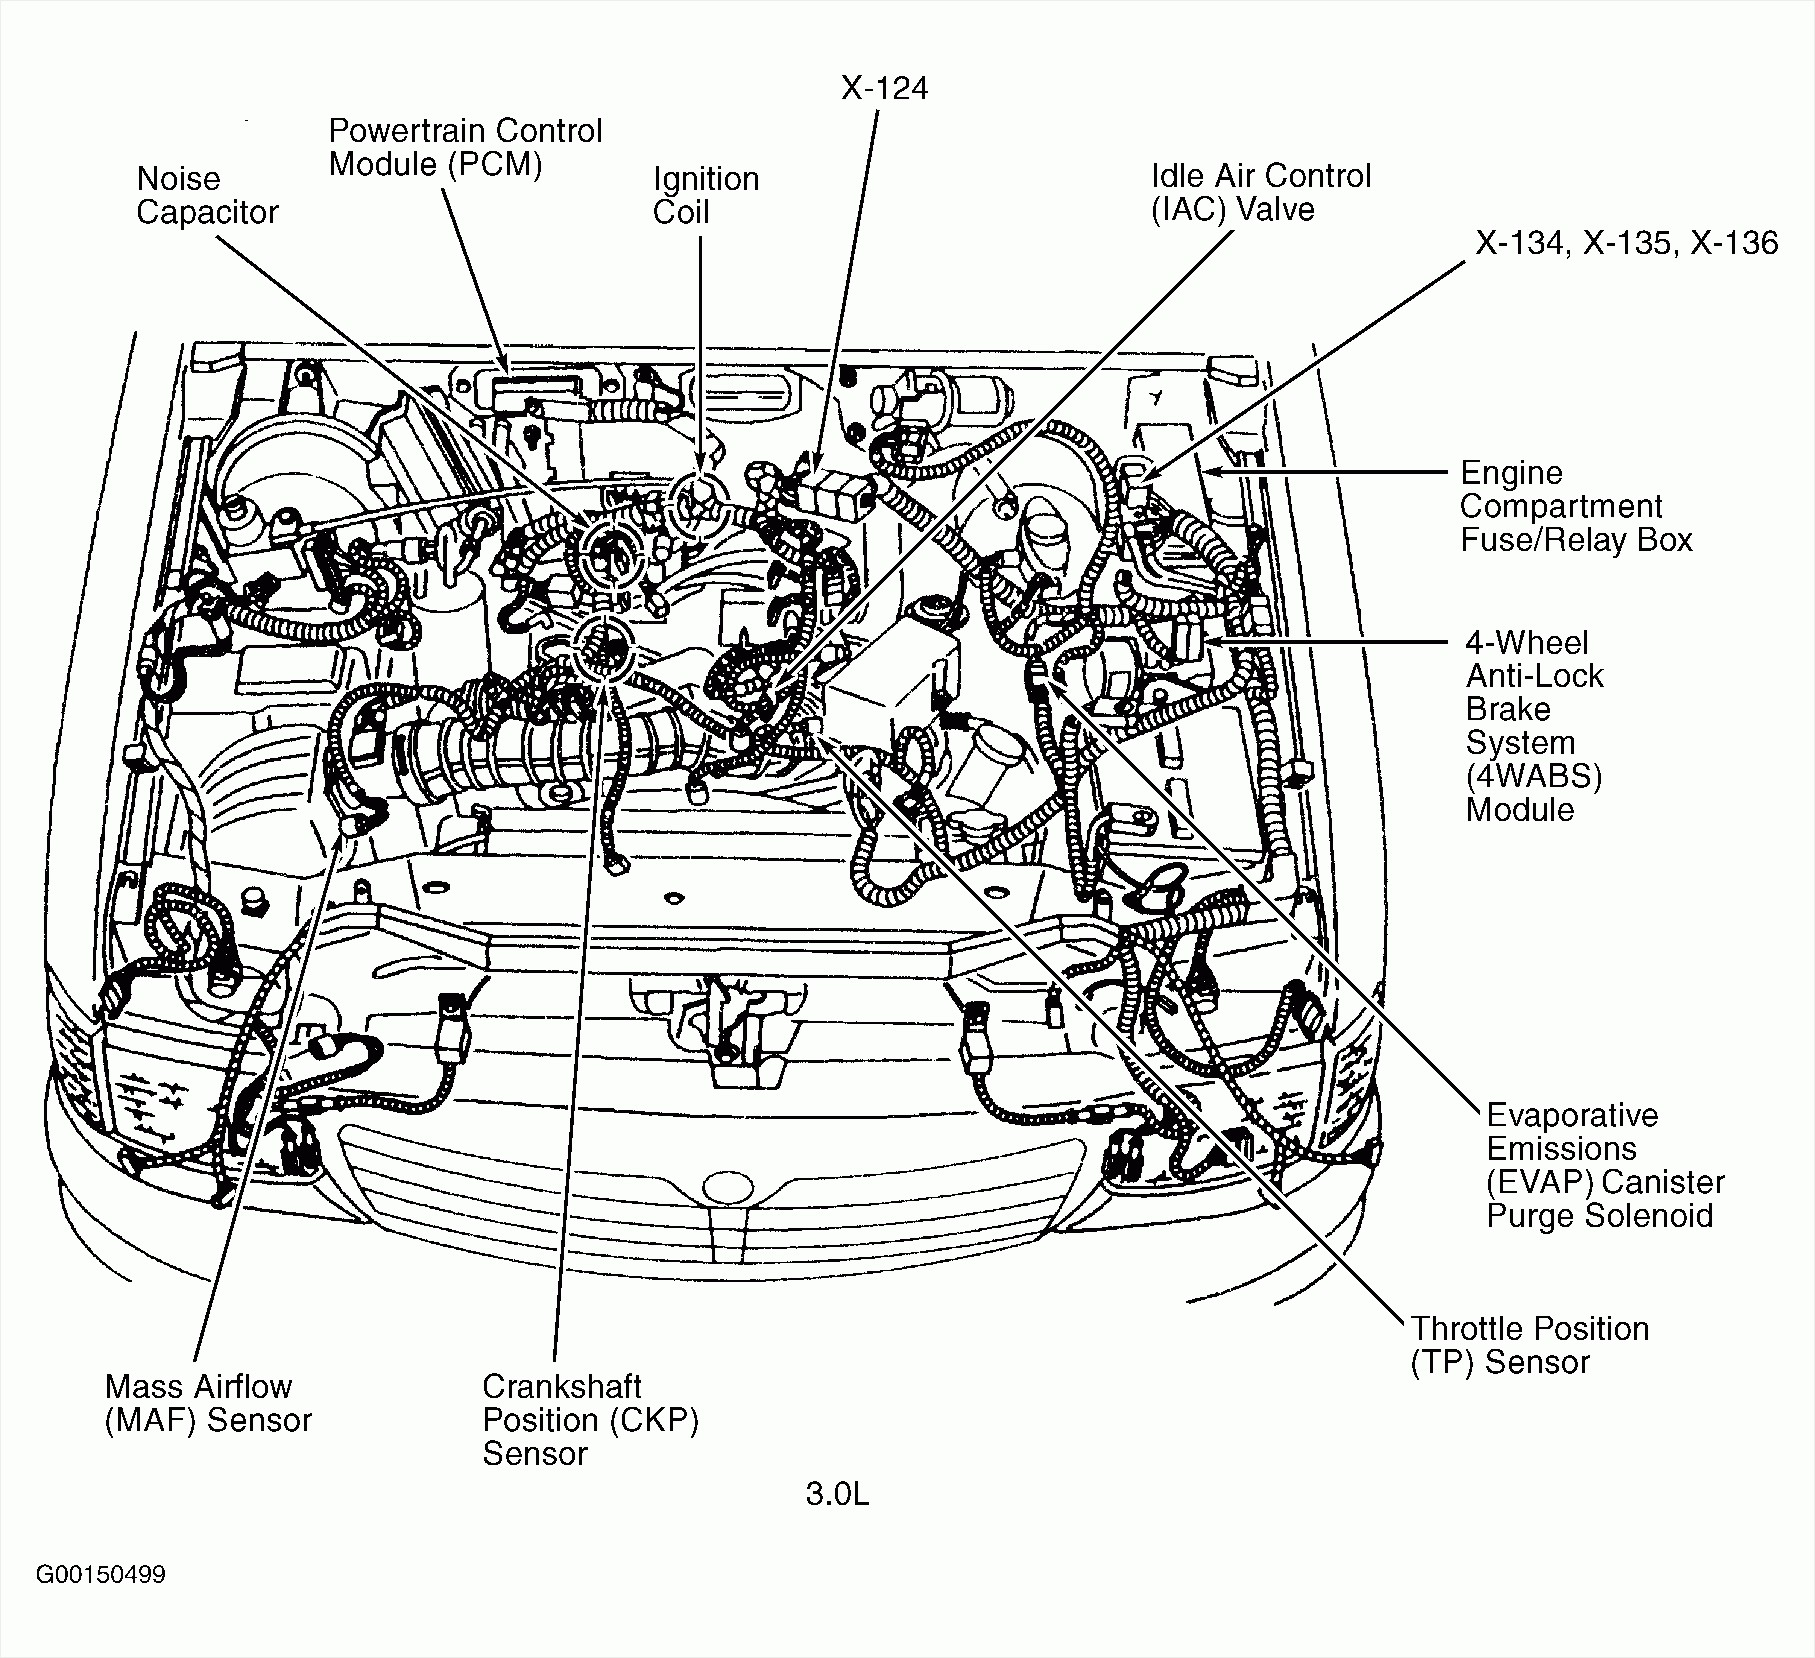 Wiring 2005 Ford Escape Parts